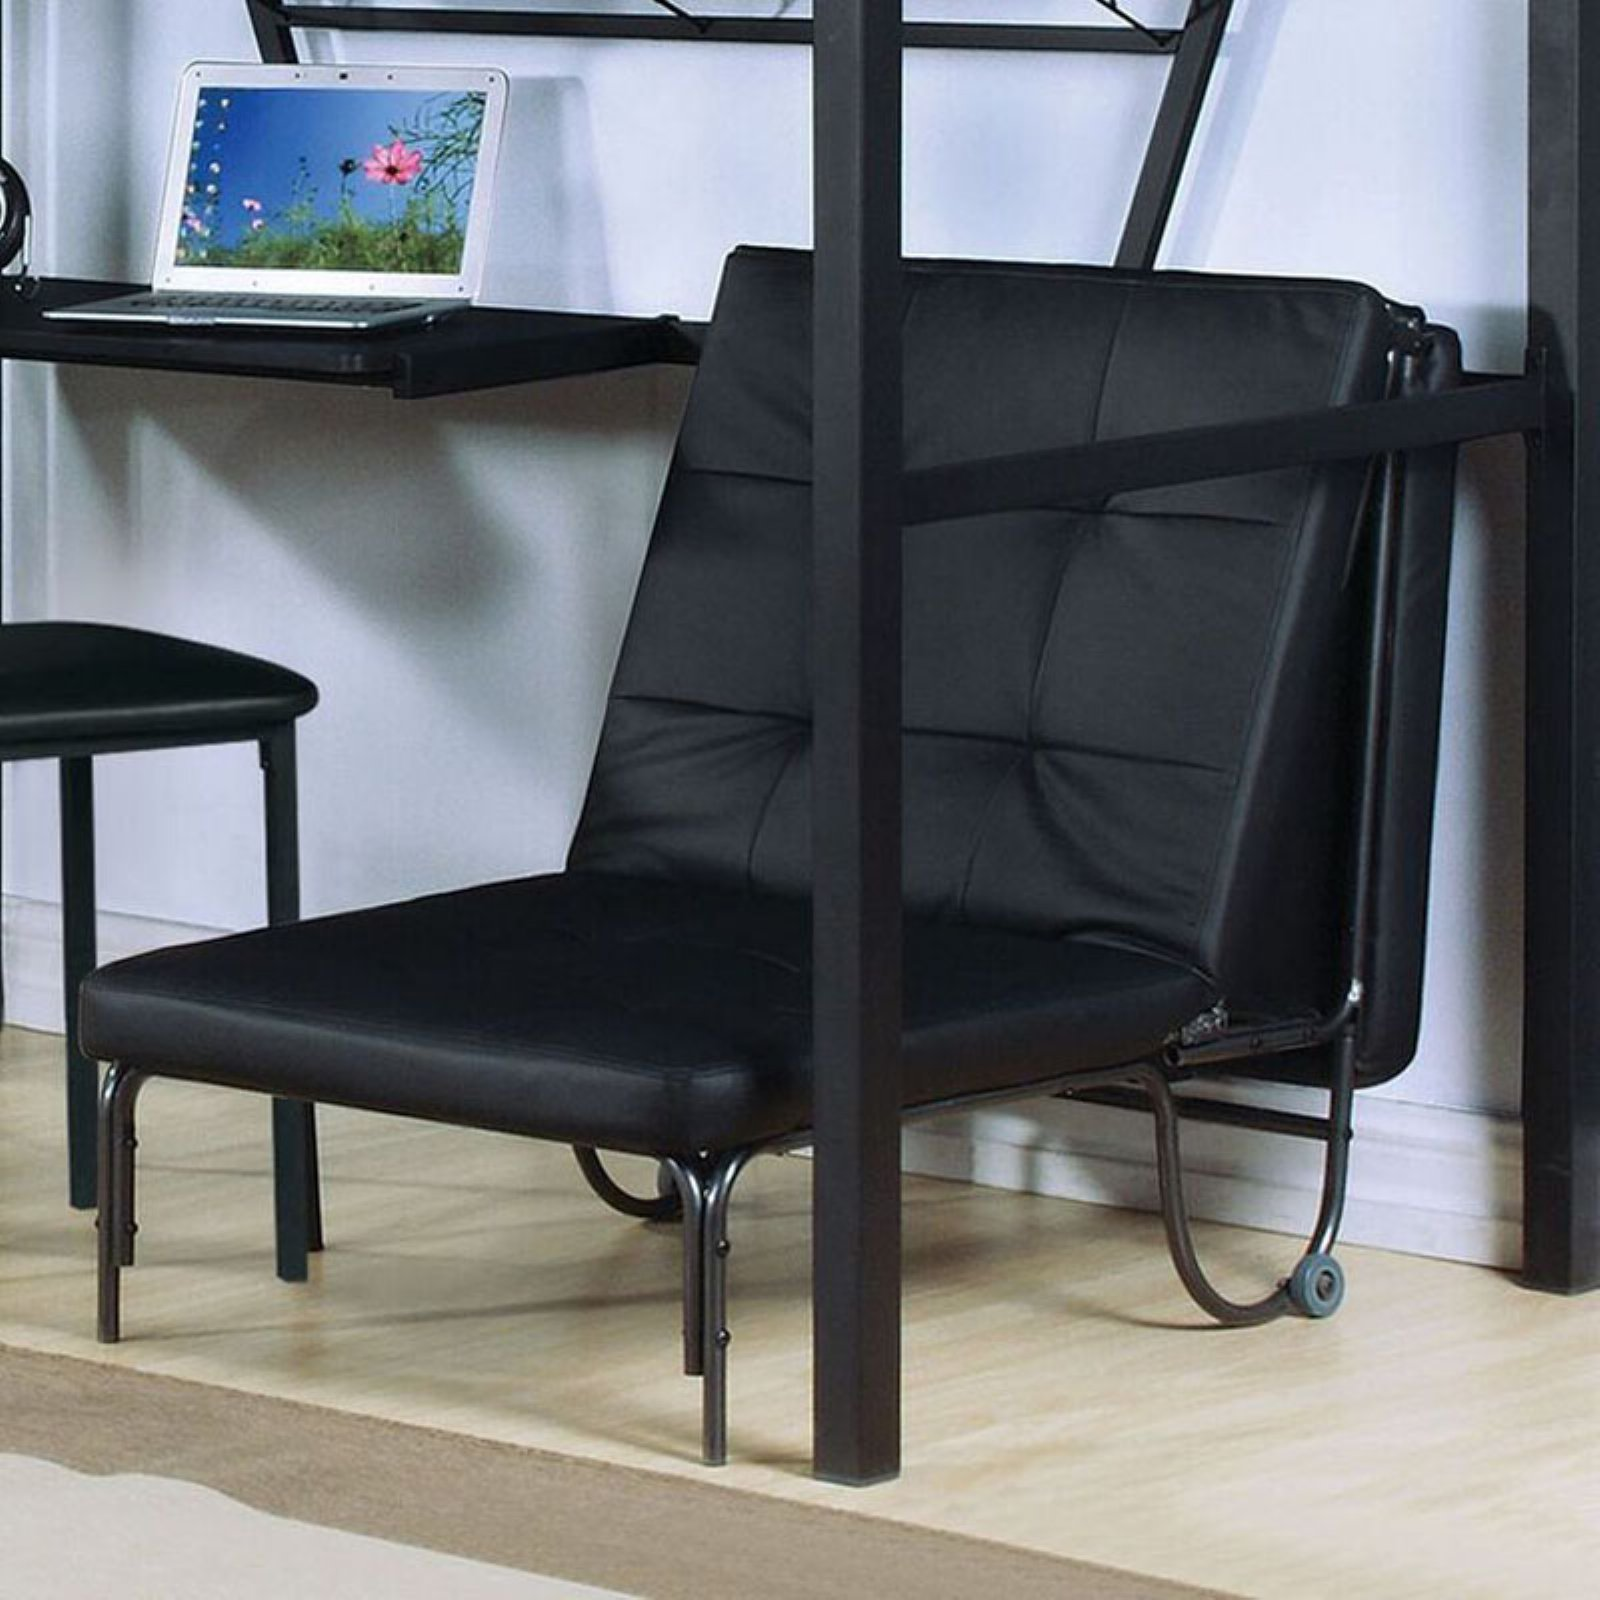 ACME Furniture Senon Adjustable Futon Chair, Silver and Black